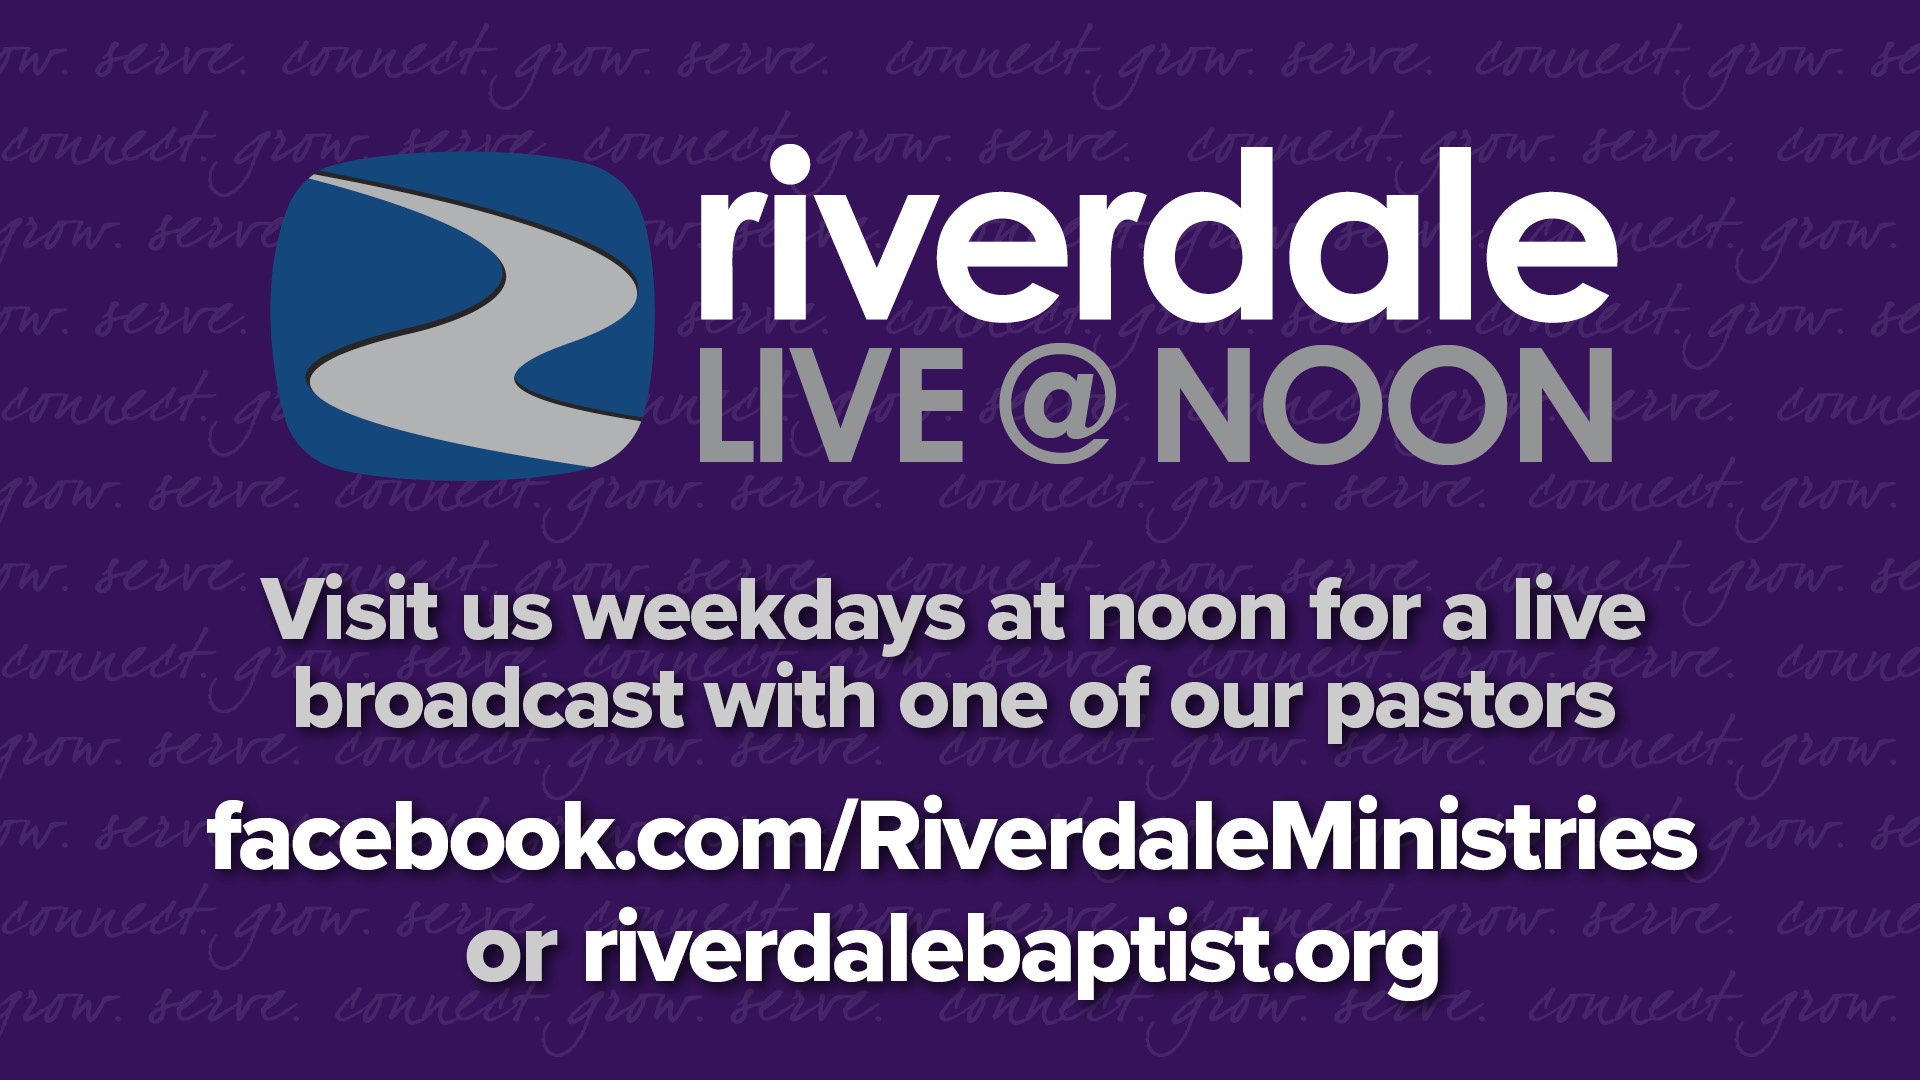 Riverdale Live @ Noon